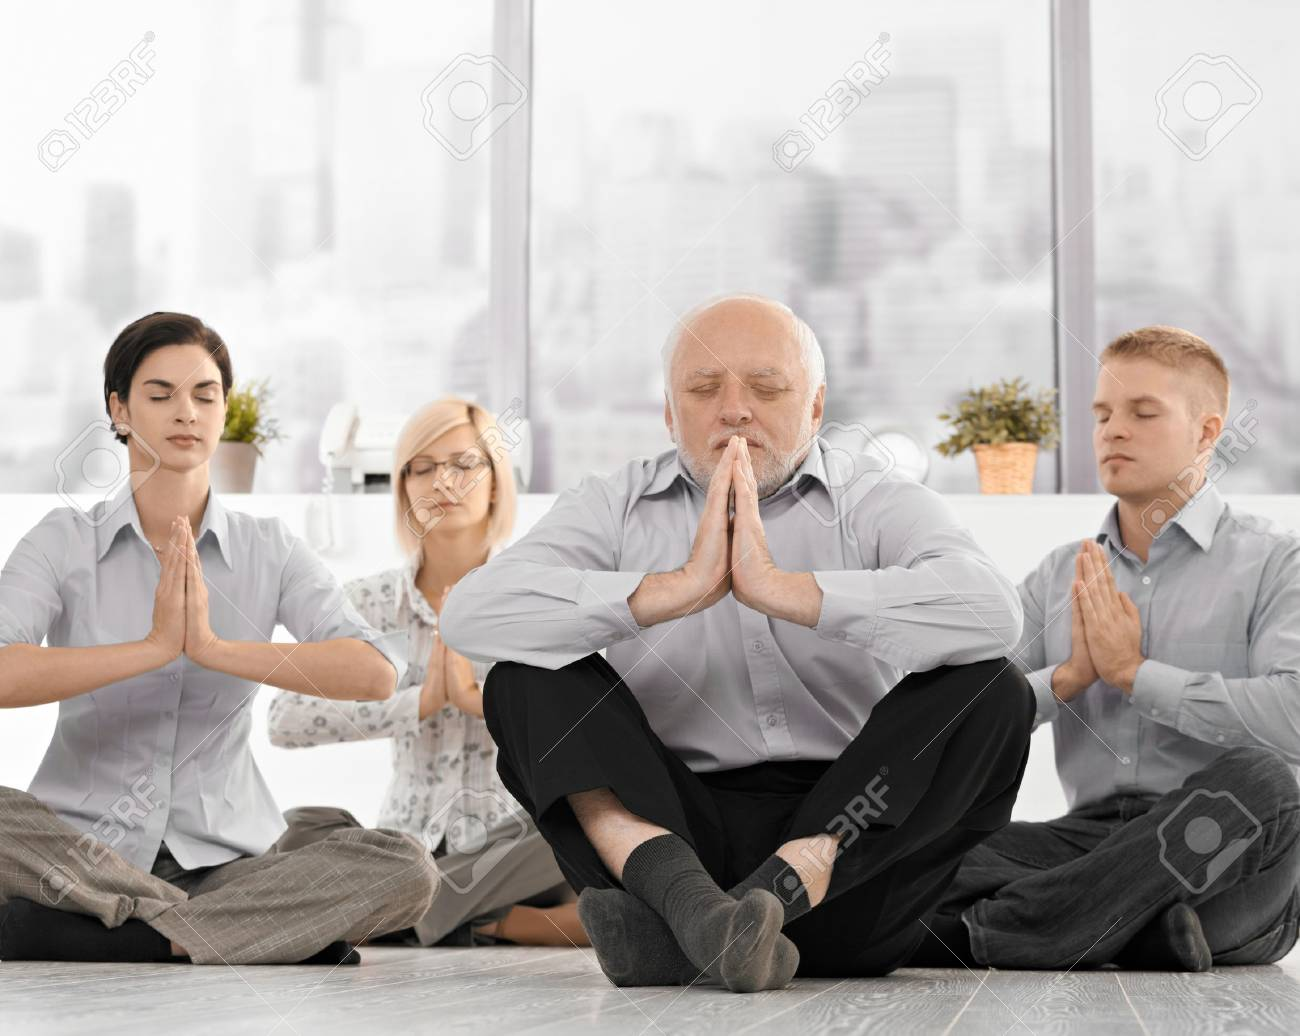 meditation in office. businesspeople doing meditation in office with closed eyes hands put together concentrating stock i